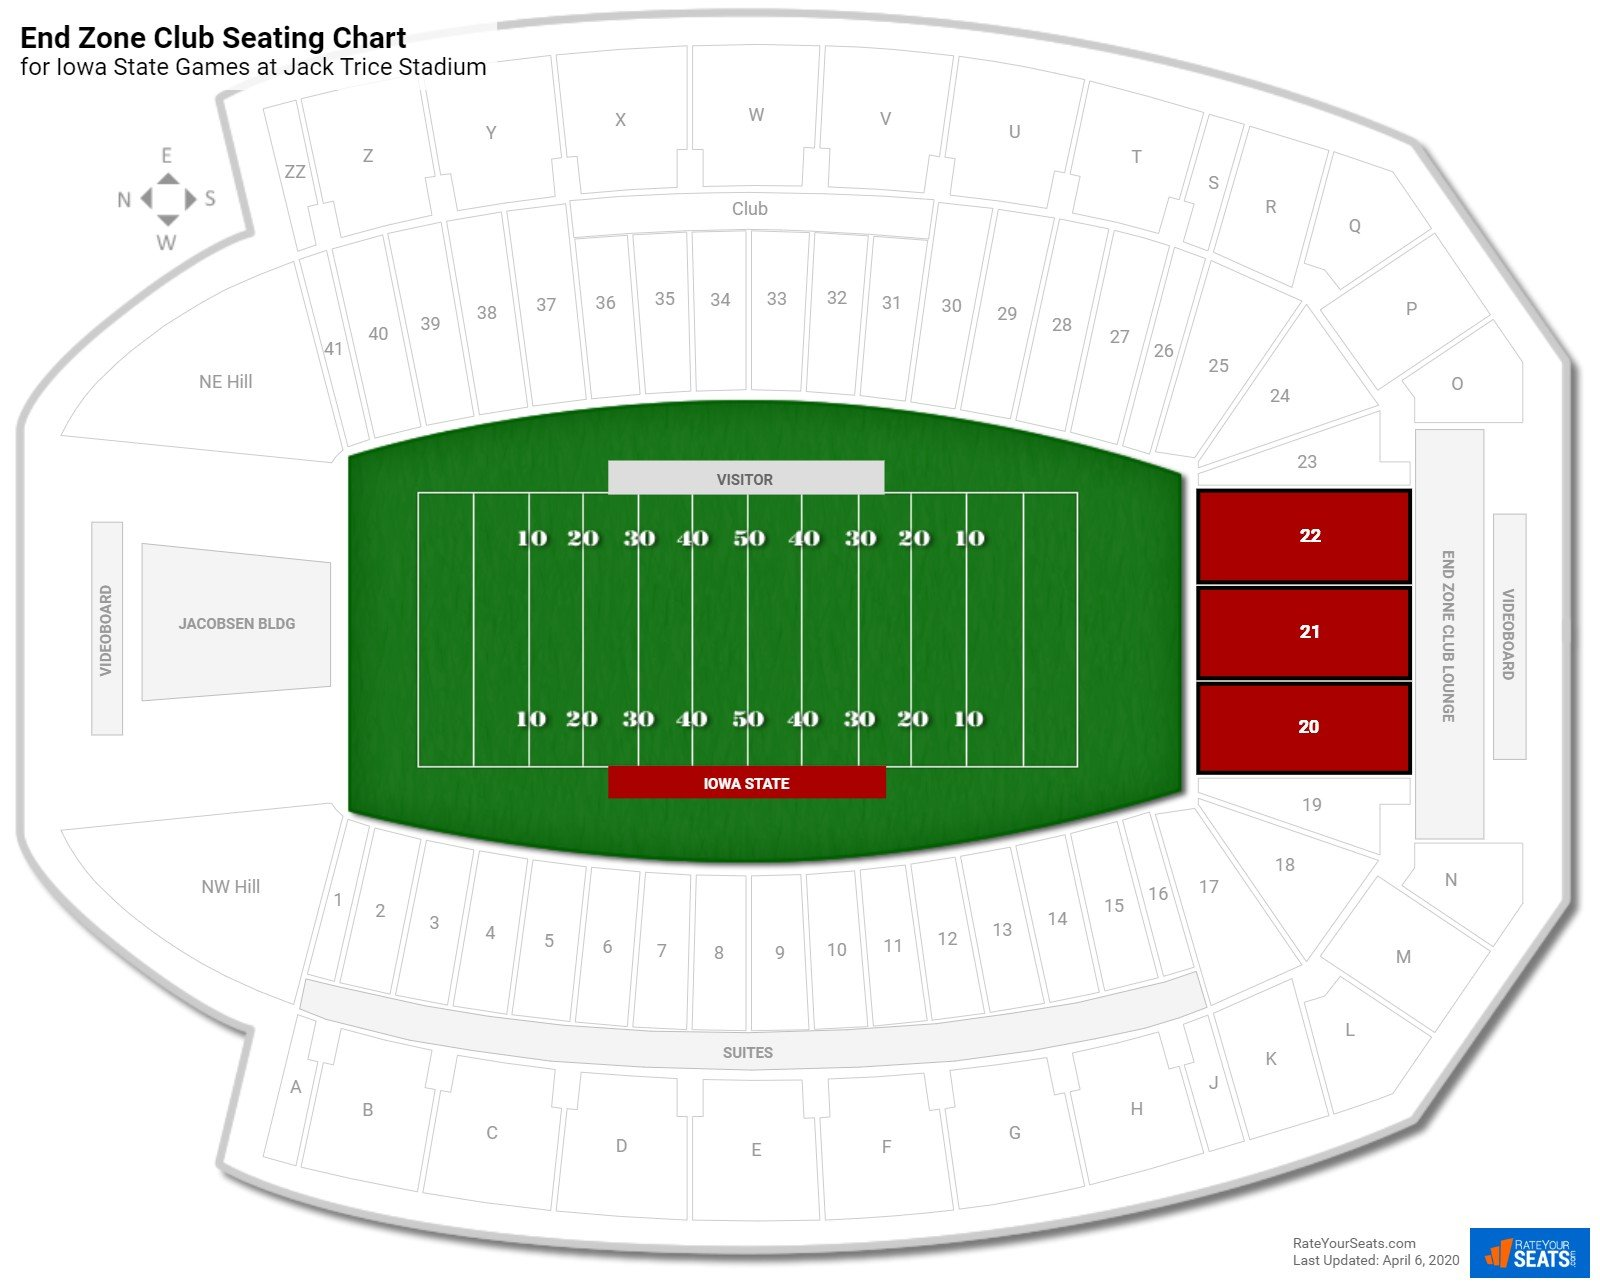 Jack Trice Stadium End Zone Club seating chart